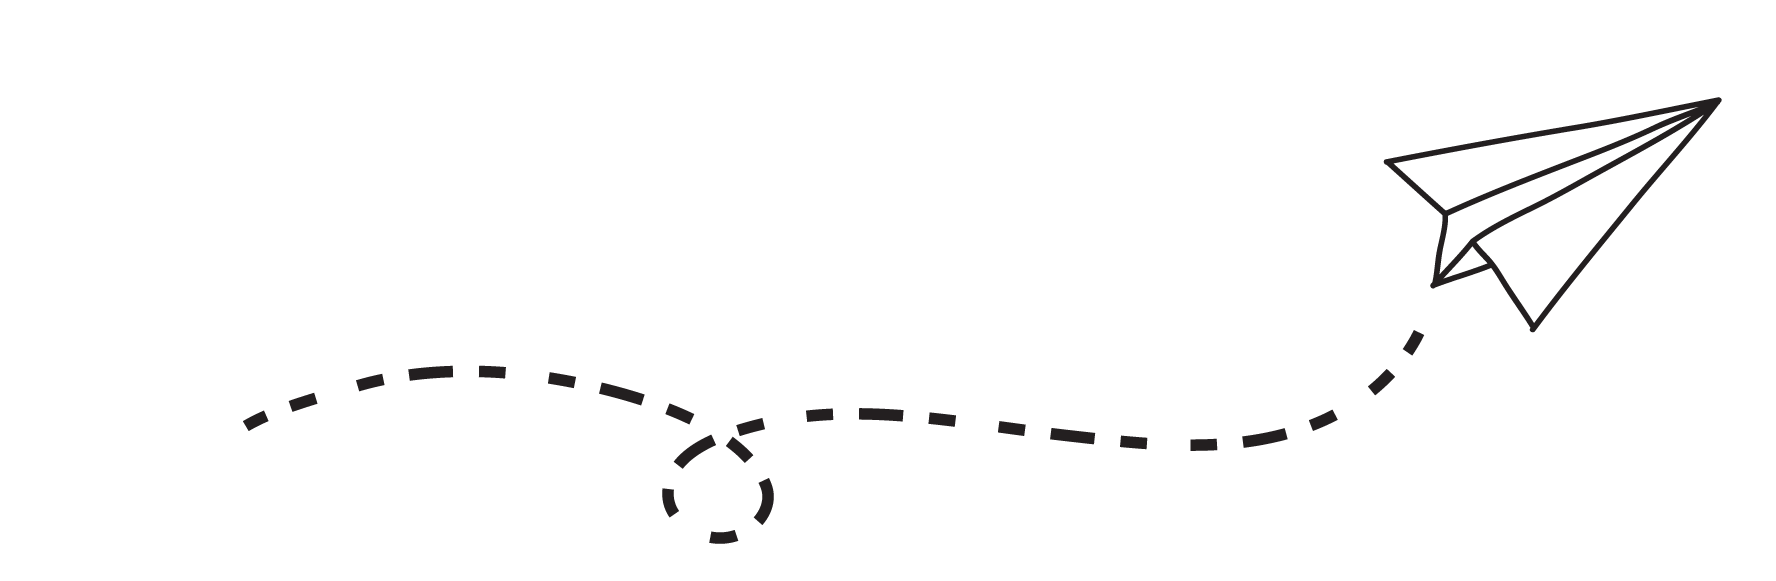 paper_plane_PNG20.png